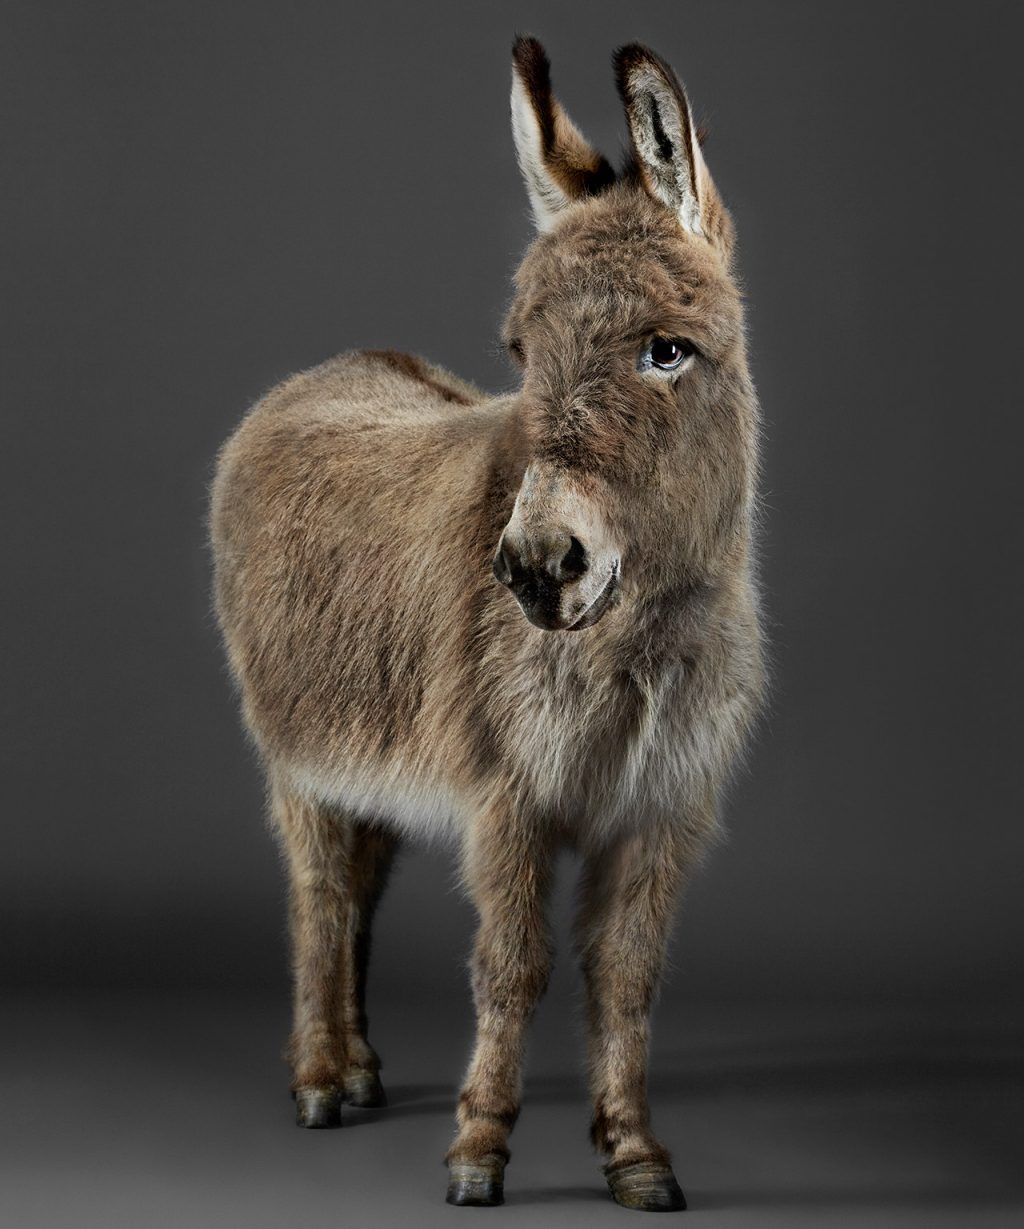 Stanley the Donkey, a fine art animal photograph